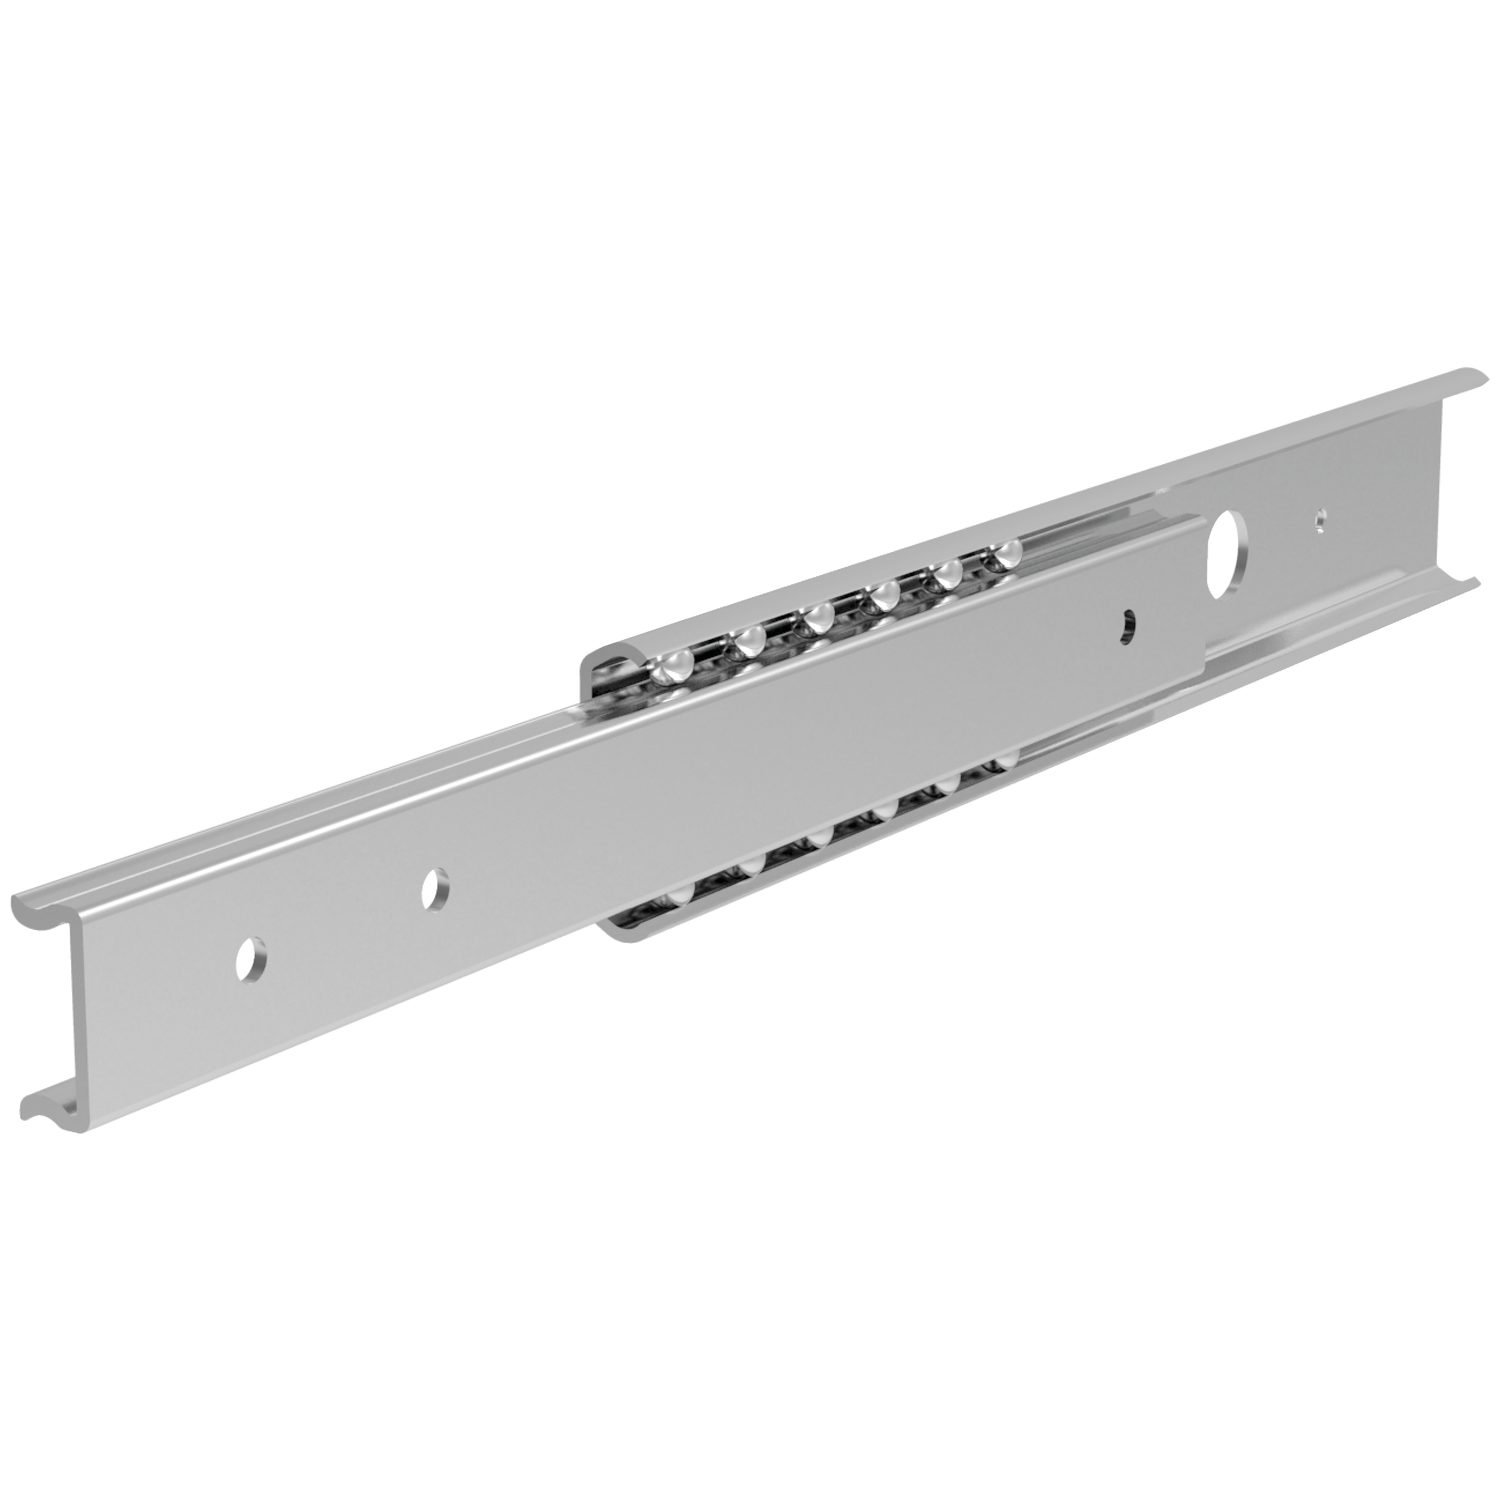 Soft-Close Drawer Slides Soft Close drawer slides, loads up to 40kg per pair.